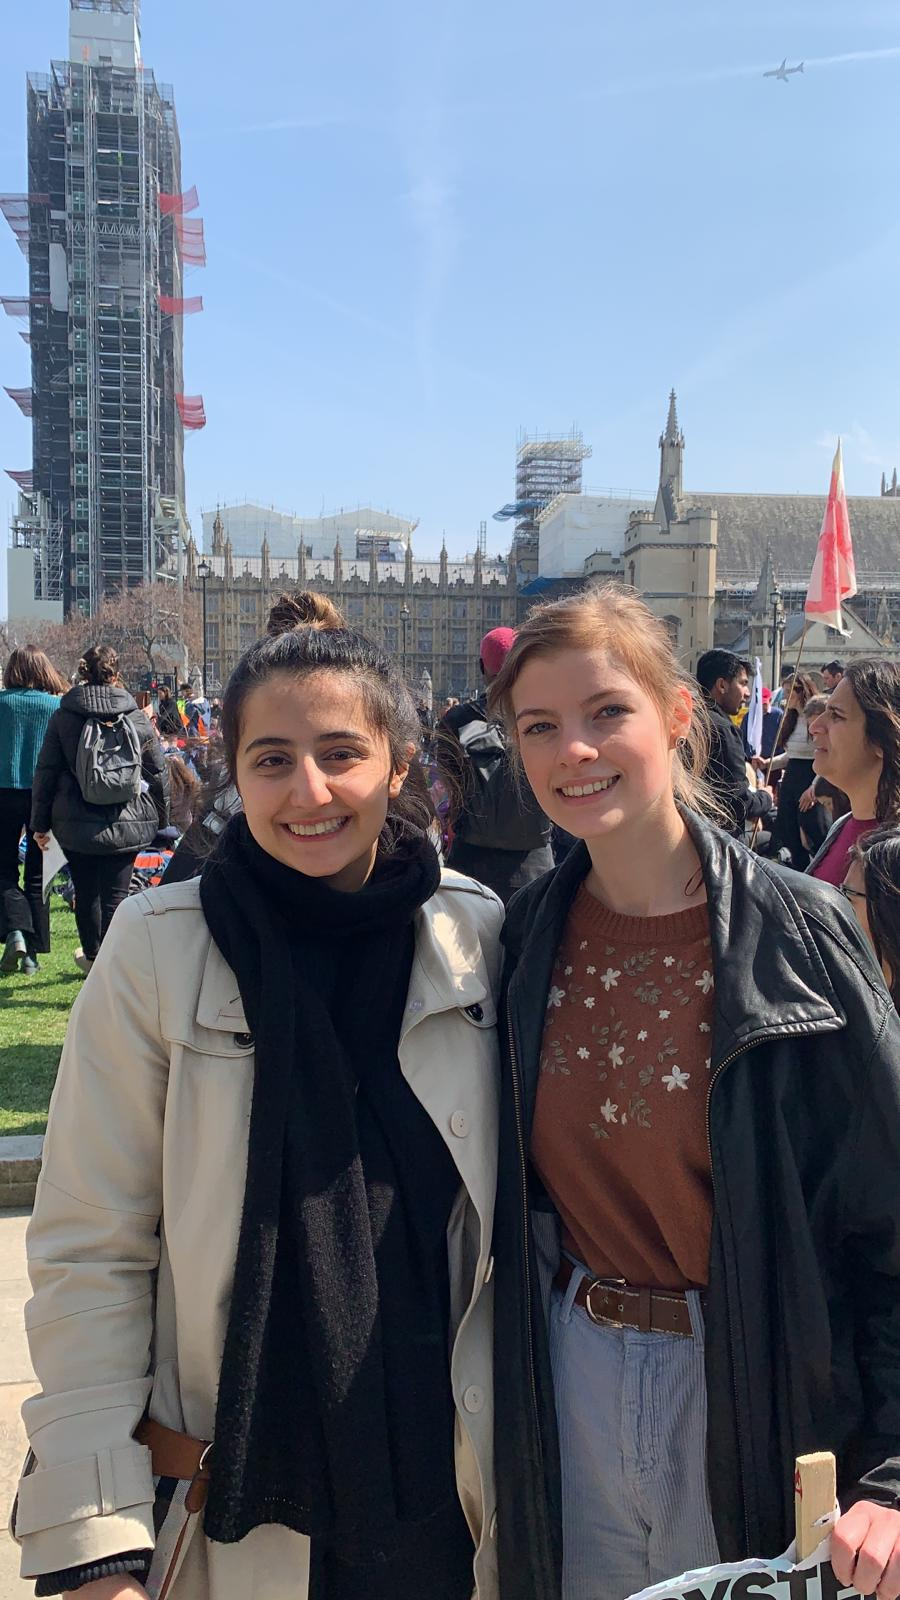 Niki Shahab (left) and Imogen Gaskell (right) protest in front of Britain's Houses of Parliament.